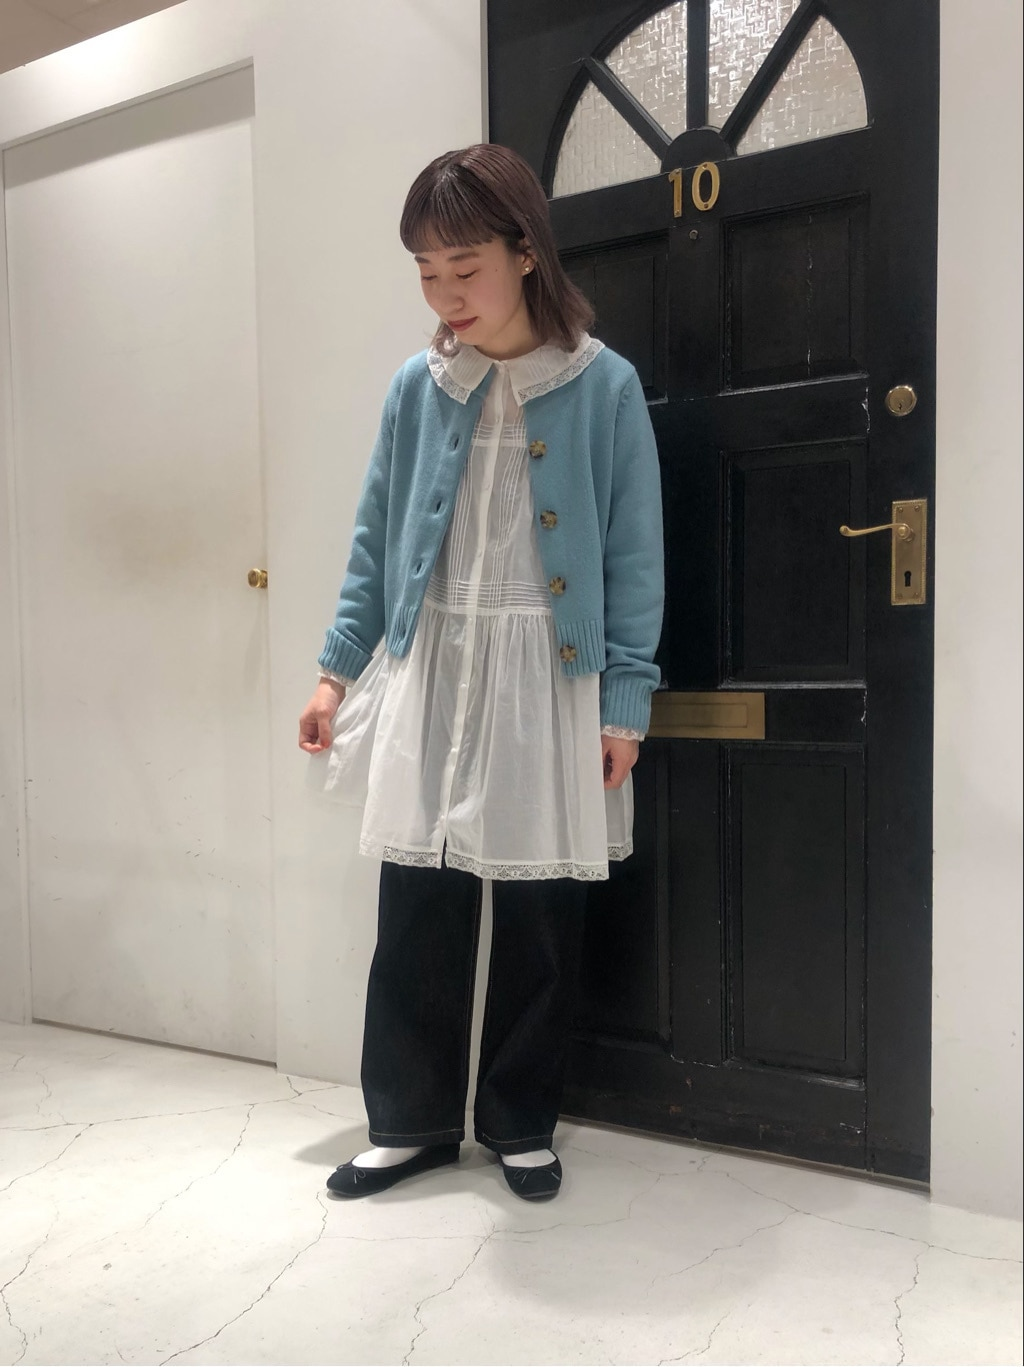 Dot and Stripes CHILD WOMAN ルクアイーレ 身長:157cm 2020.12.24